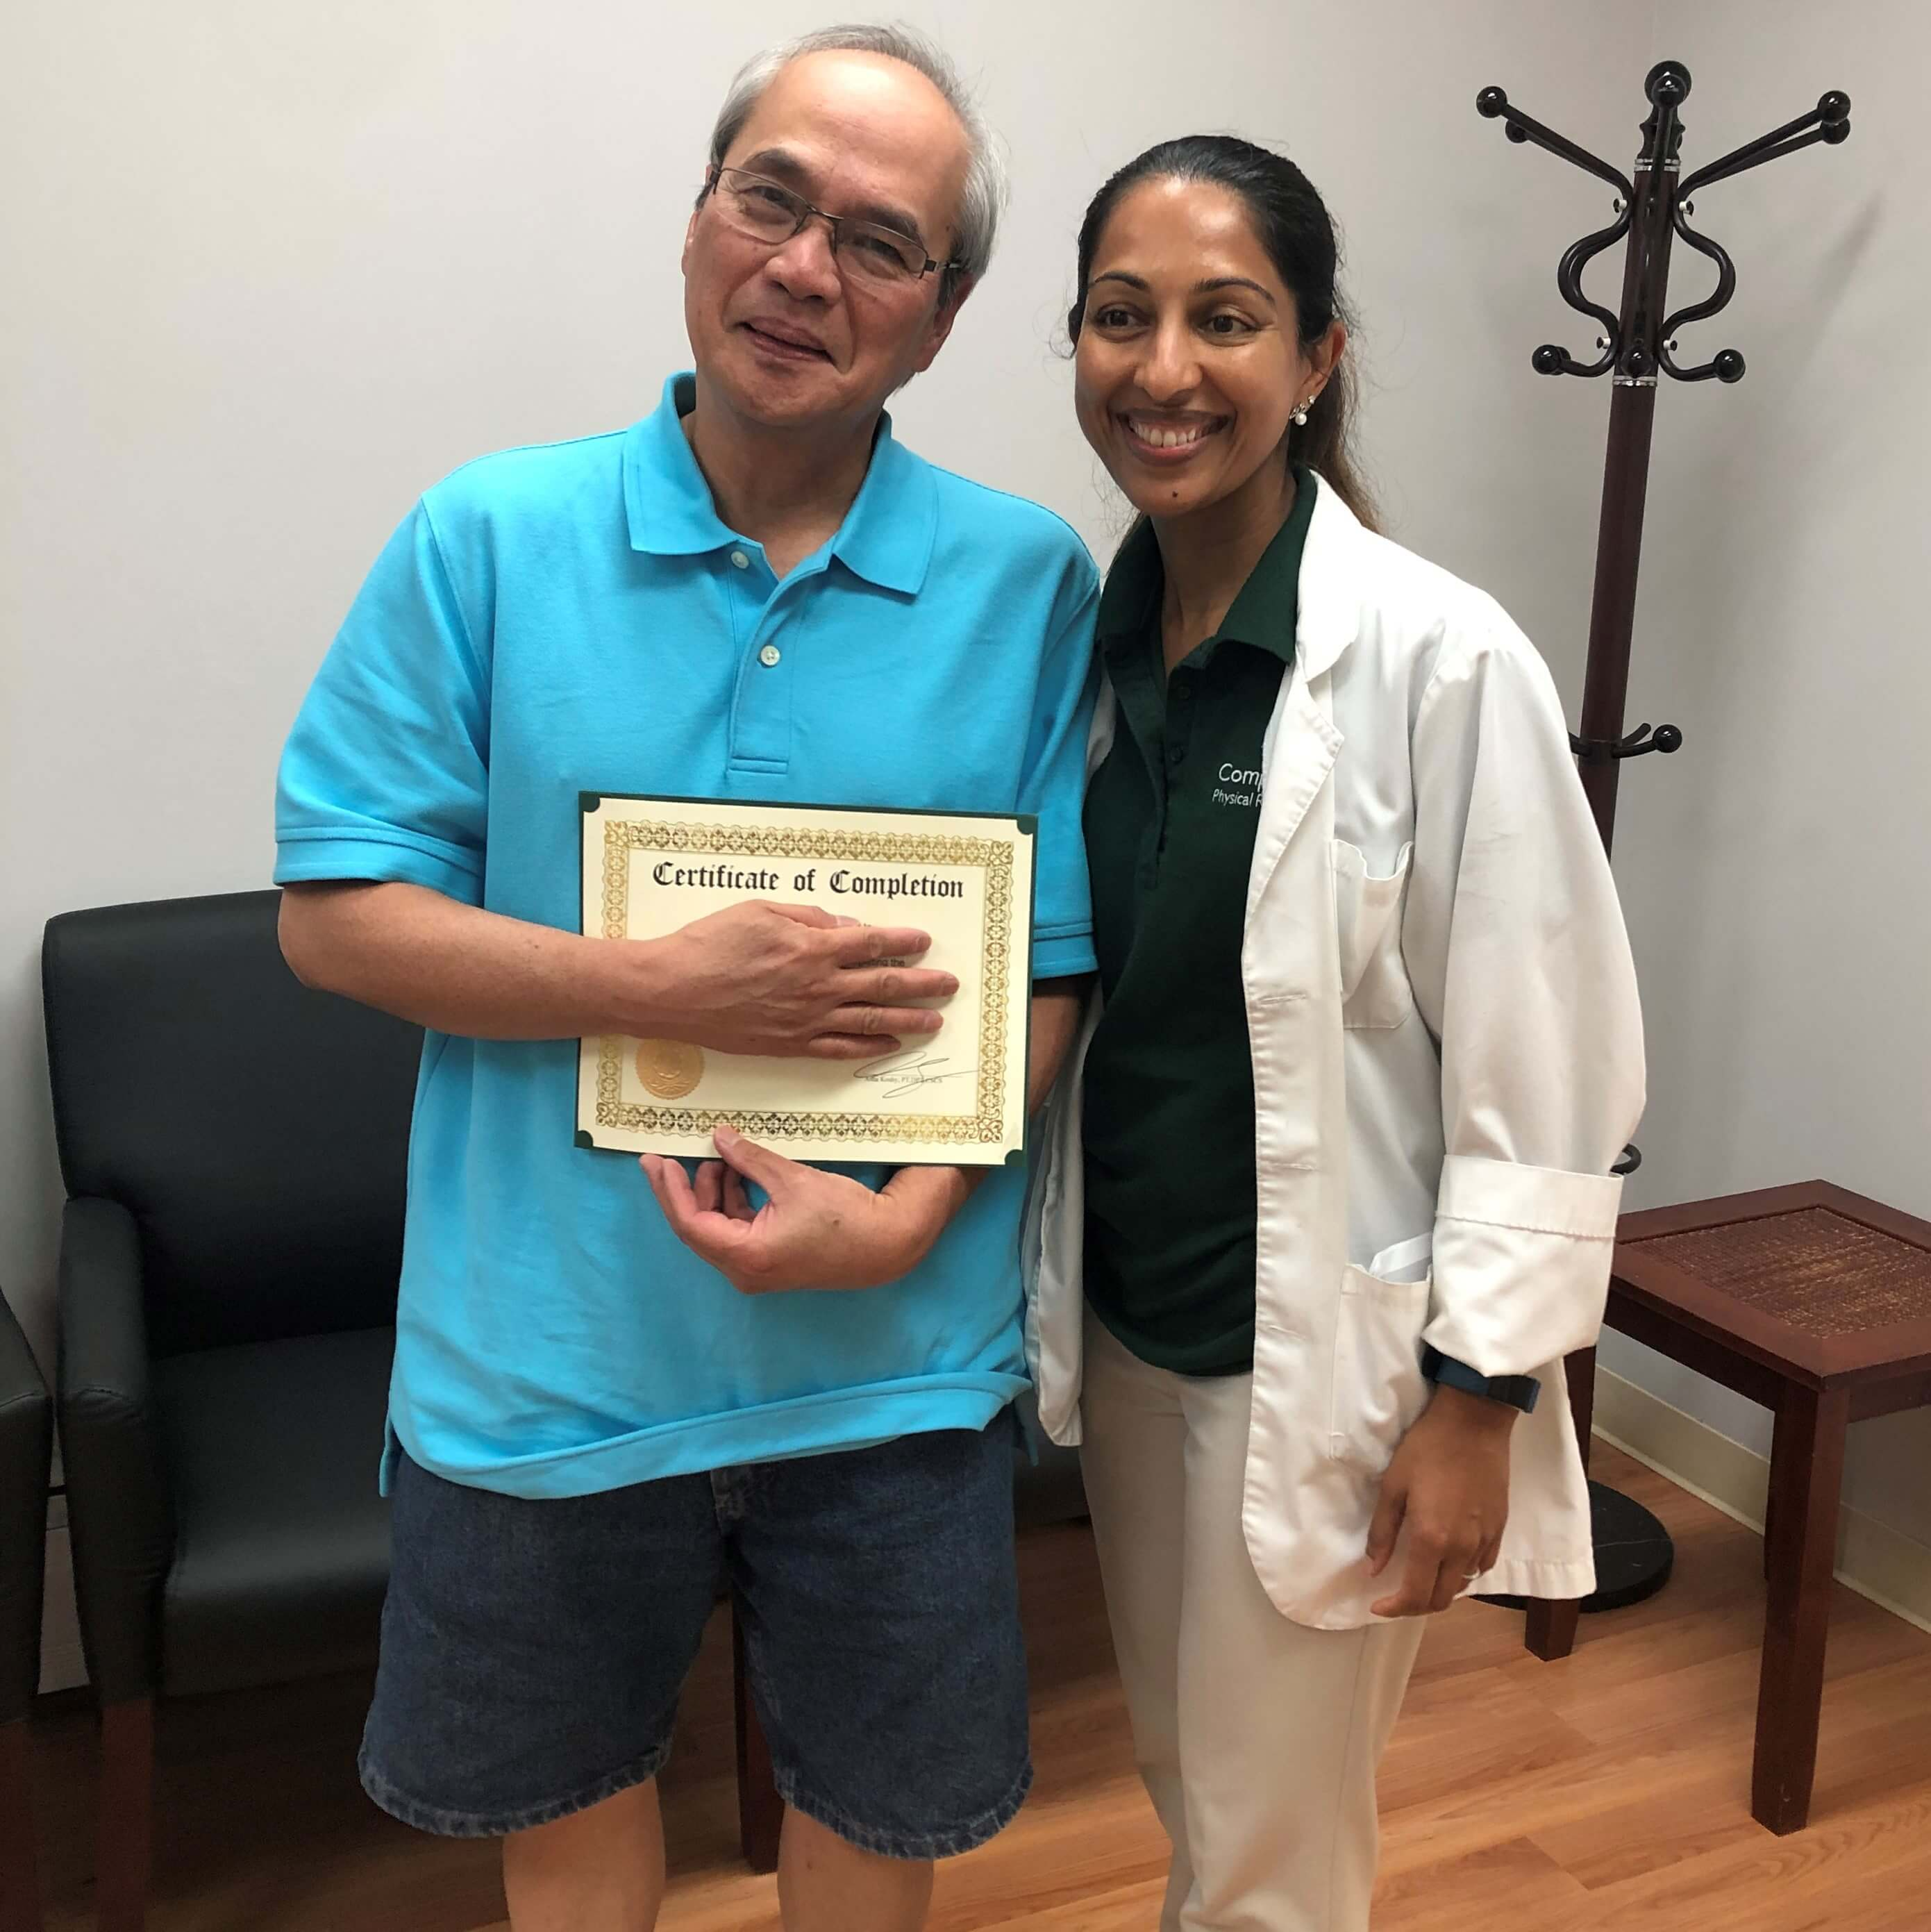 elizabeth nj physical therapy specialist dr. asha koshy with neck pain success story at complete physical rehabilitation jersey city